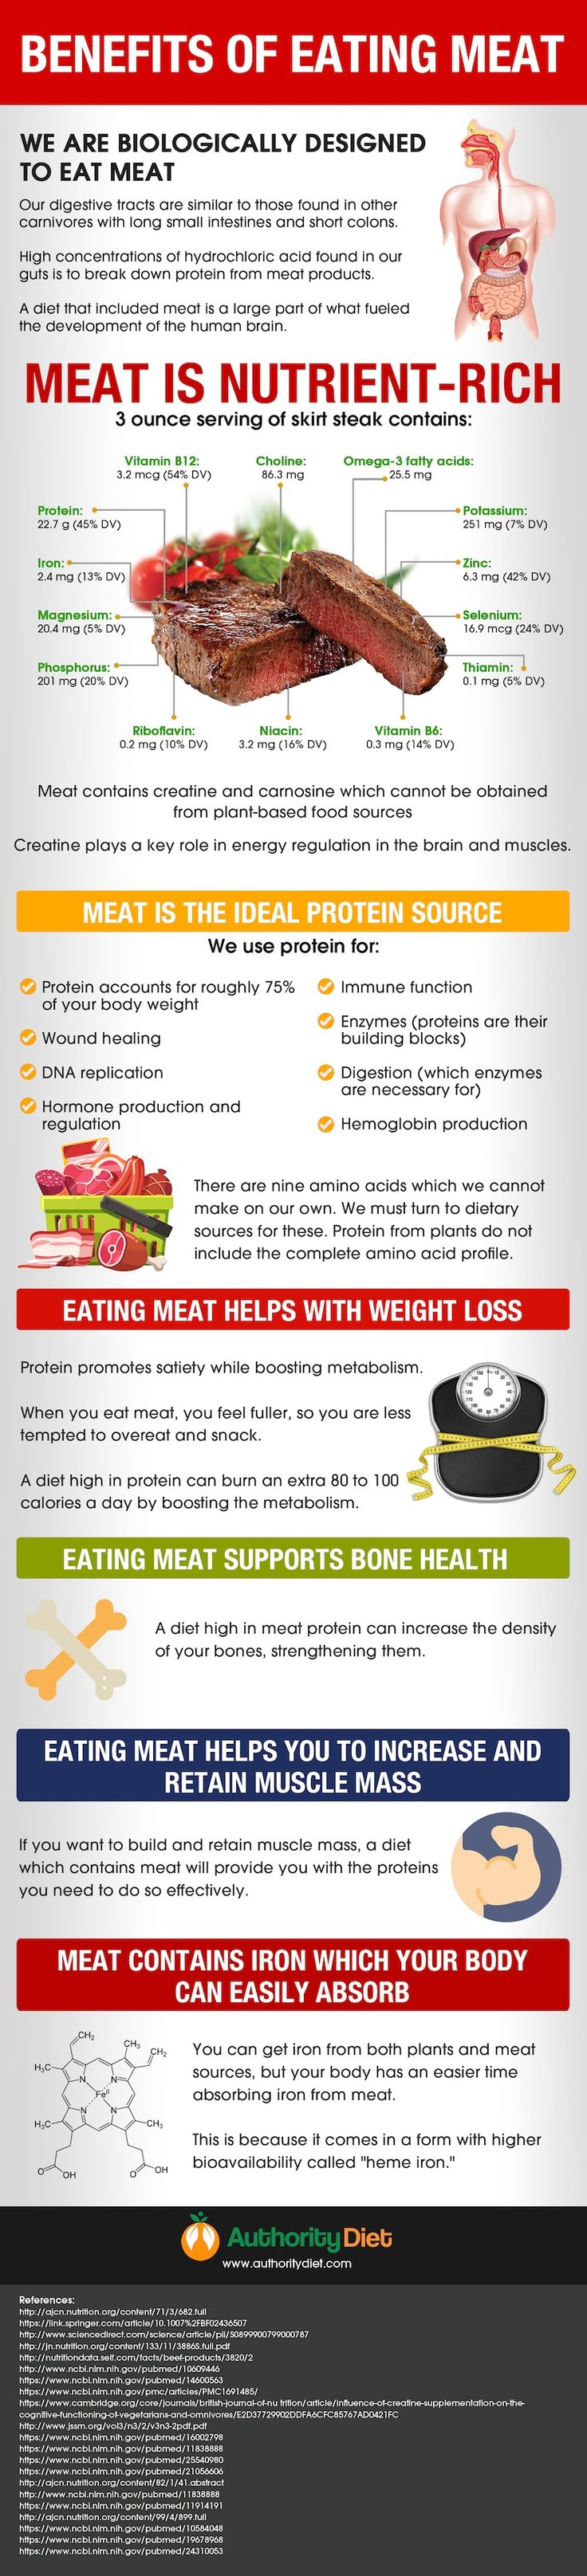 Health Benefits of Eating Meat